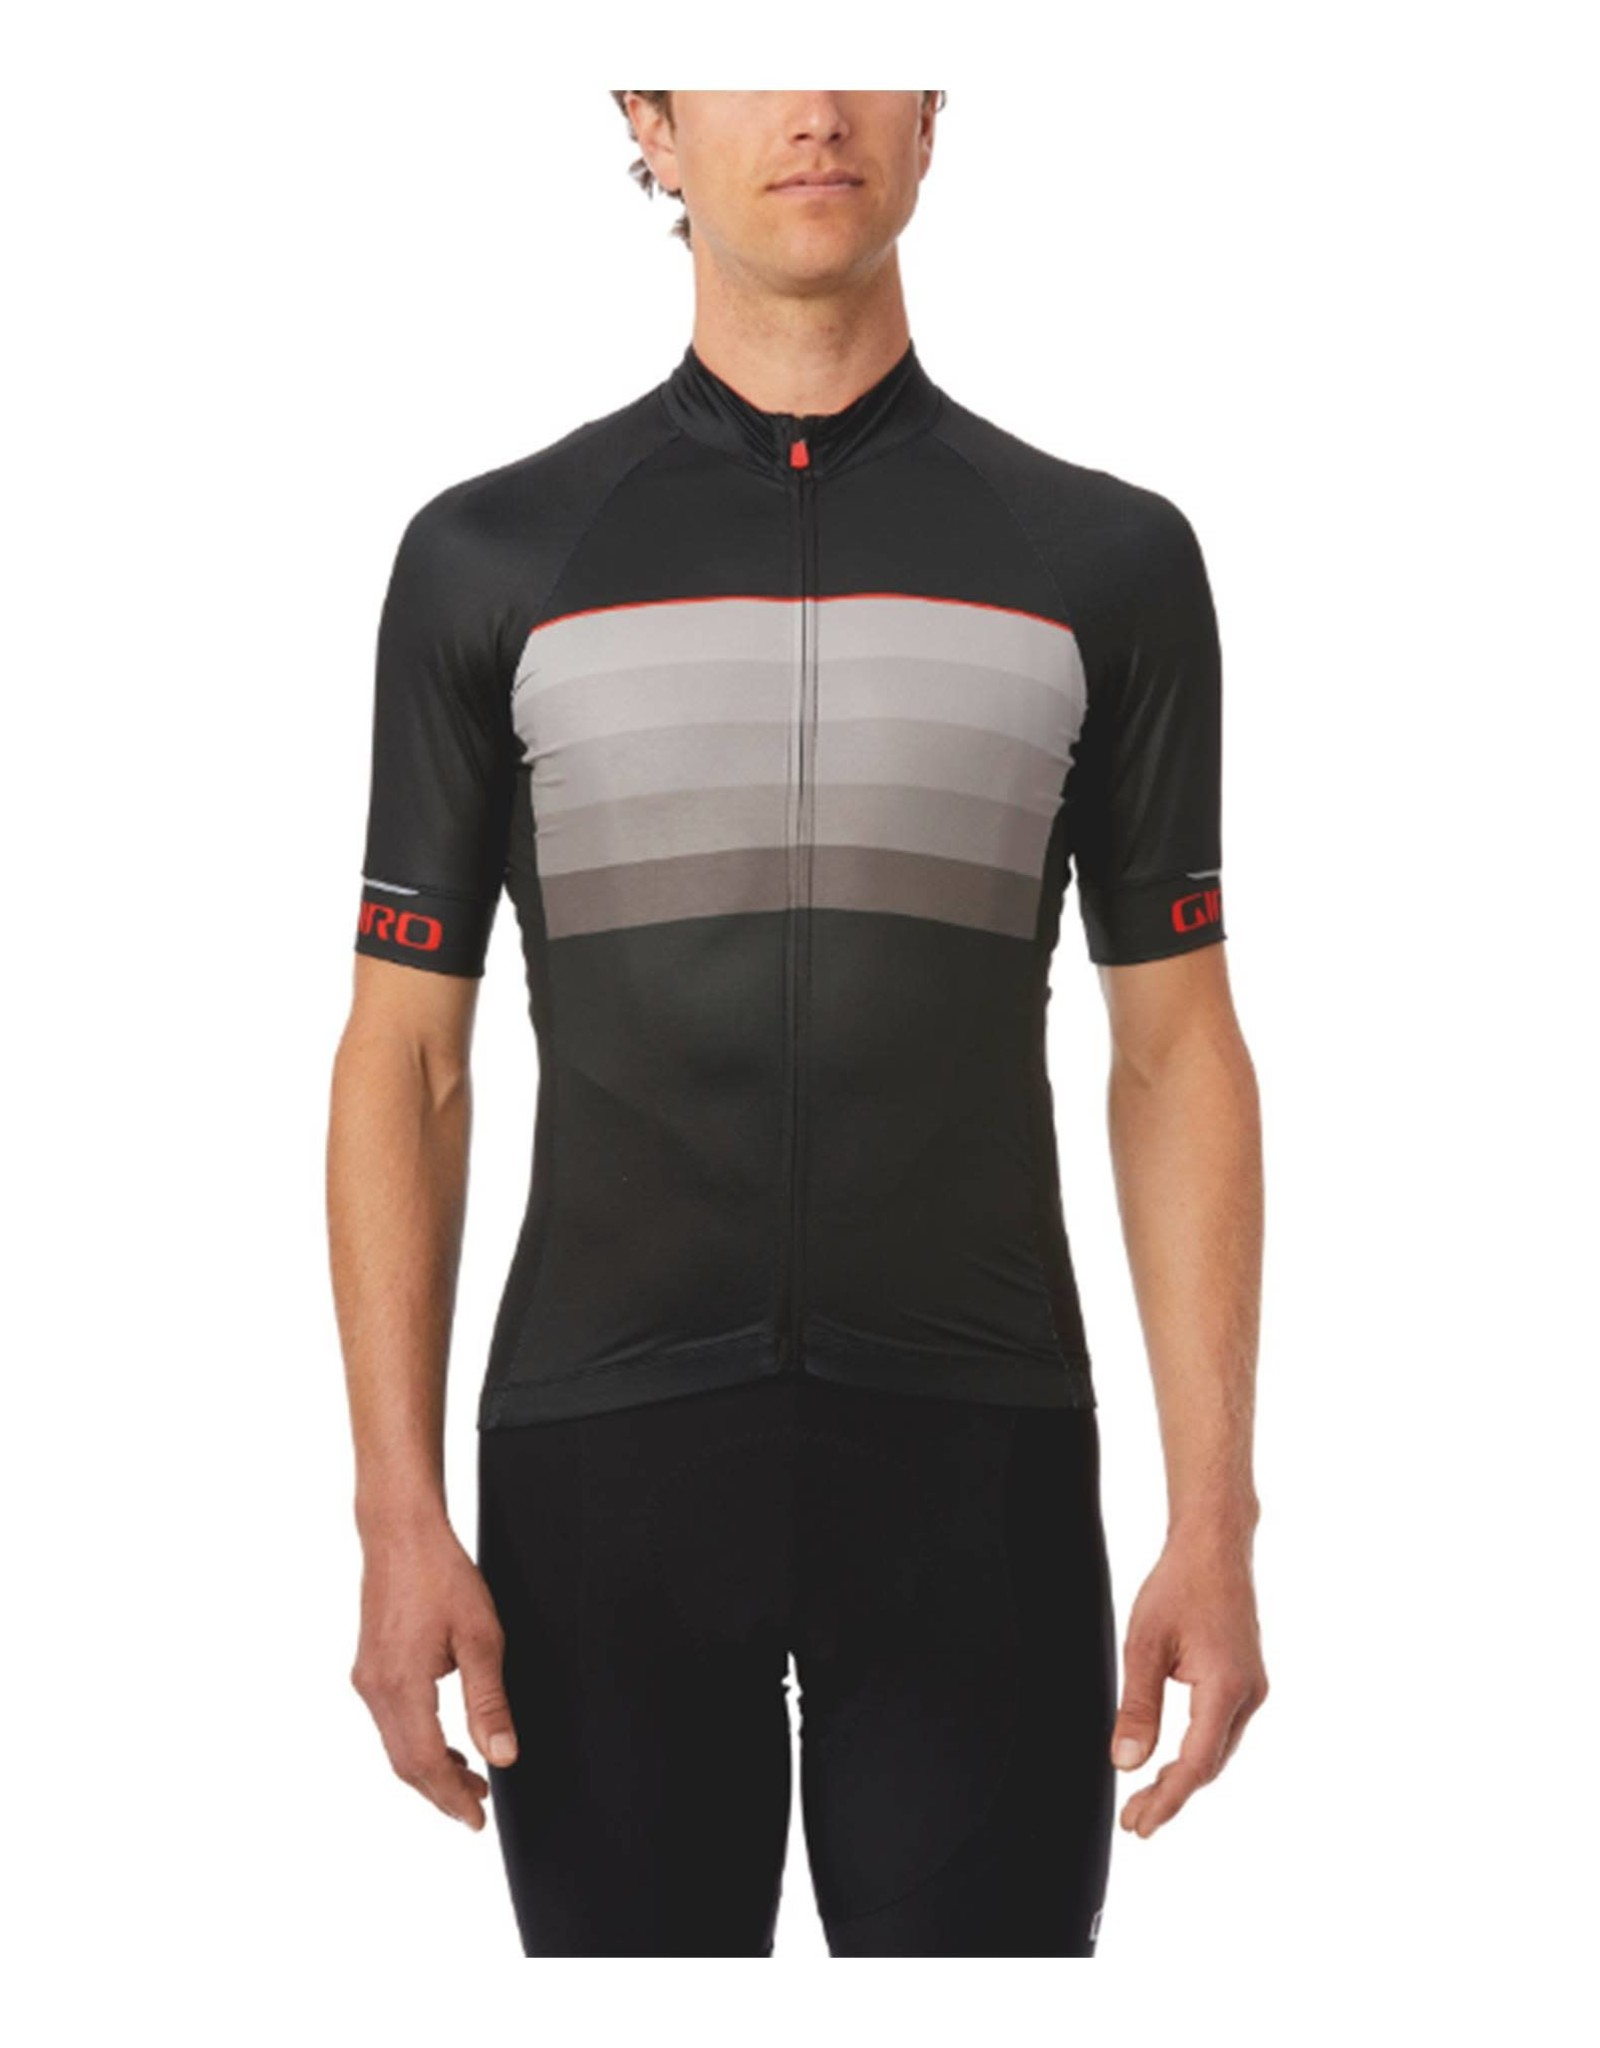 Giro Chrono Expert Cycling Jersey Black / Red Horizon